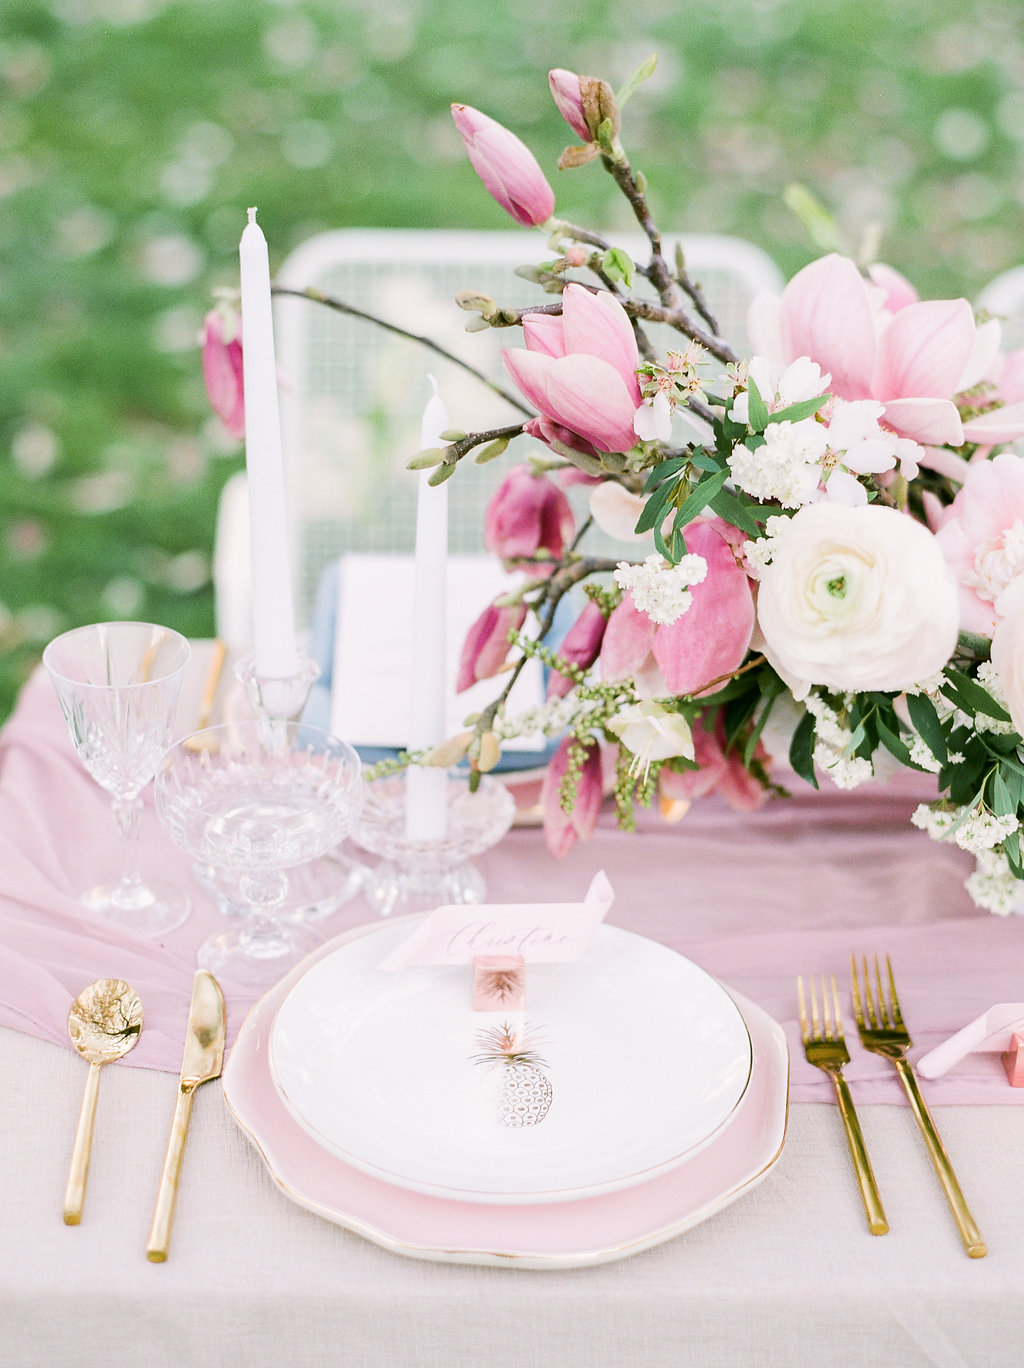 Pink silk table runners and Floral arrangements with gold cutlery for wedding tablescape idea